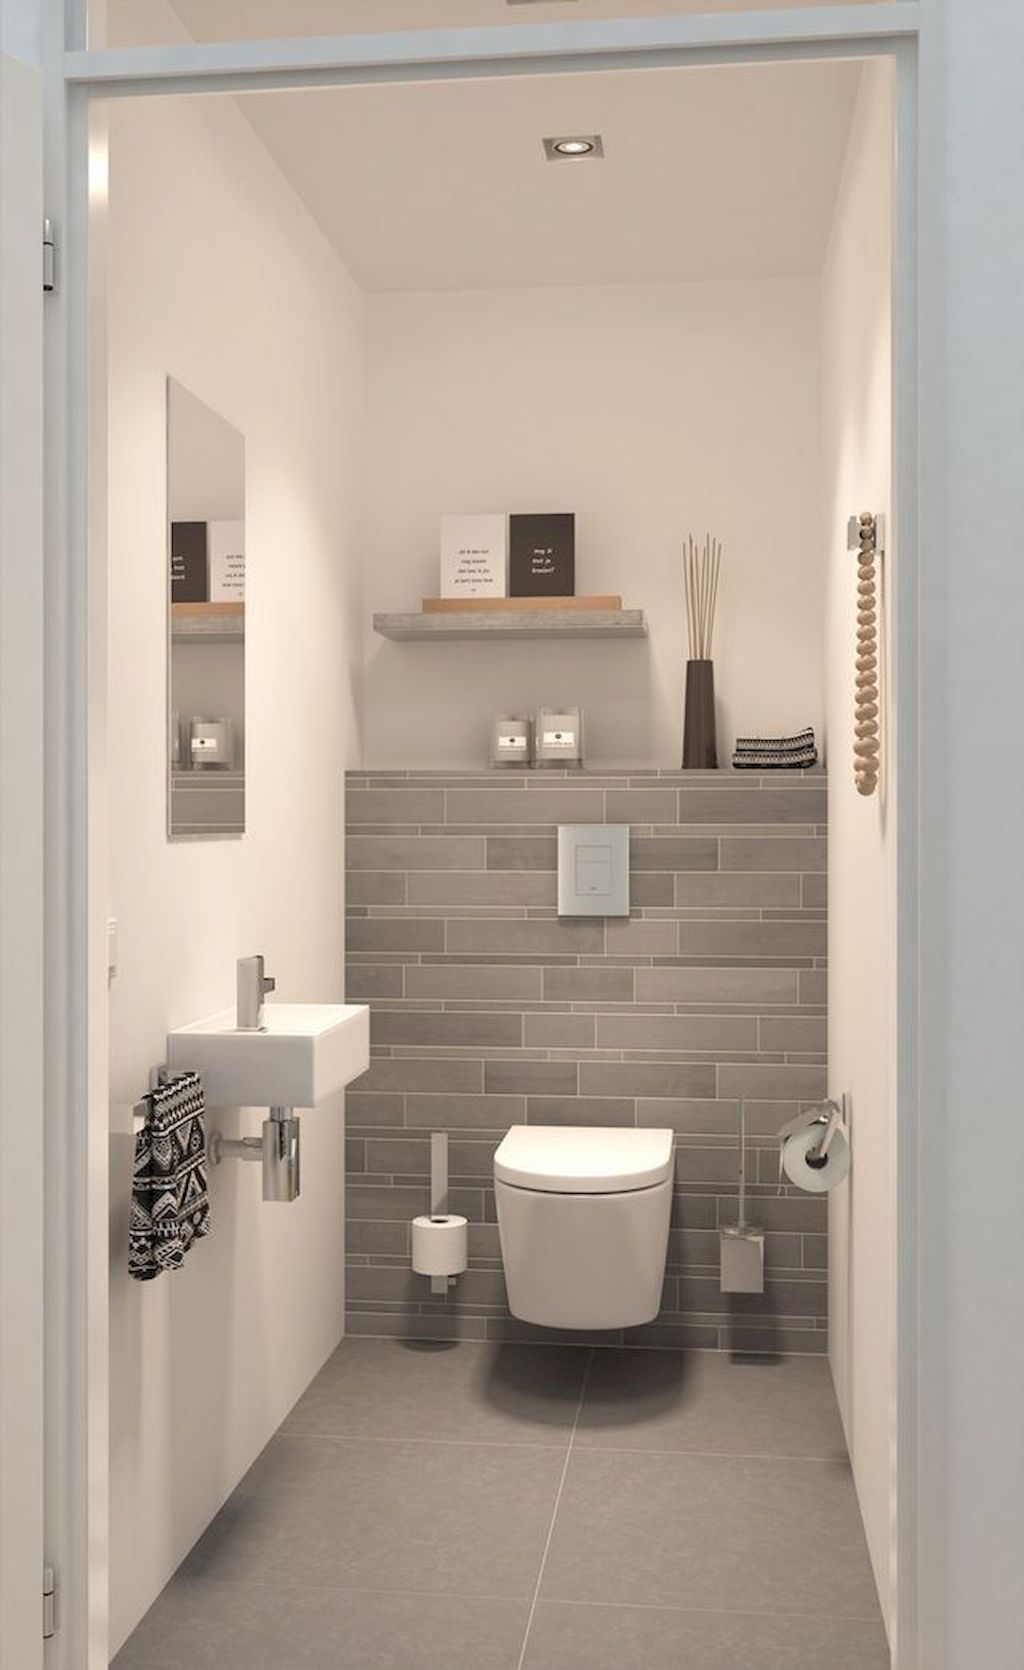 Space Saving Toilet Design For Small Bathroom Home To Z Small